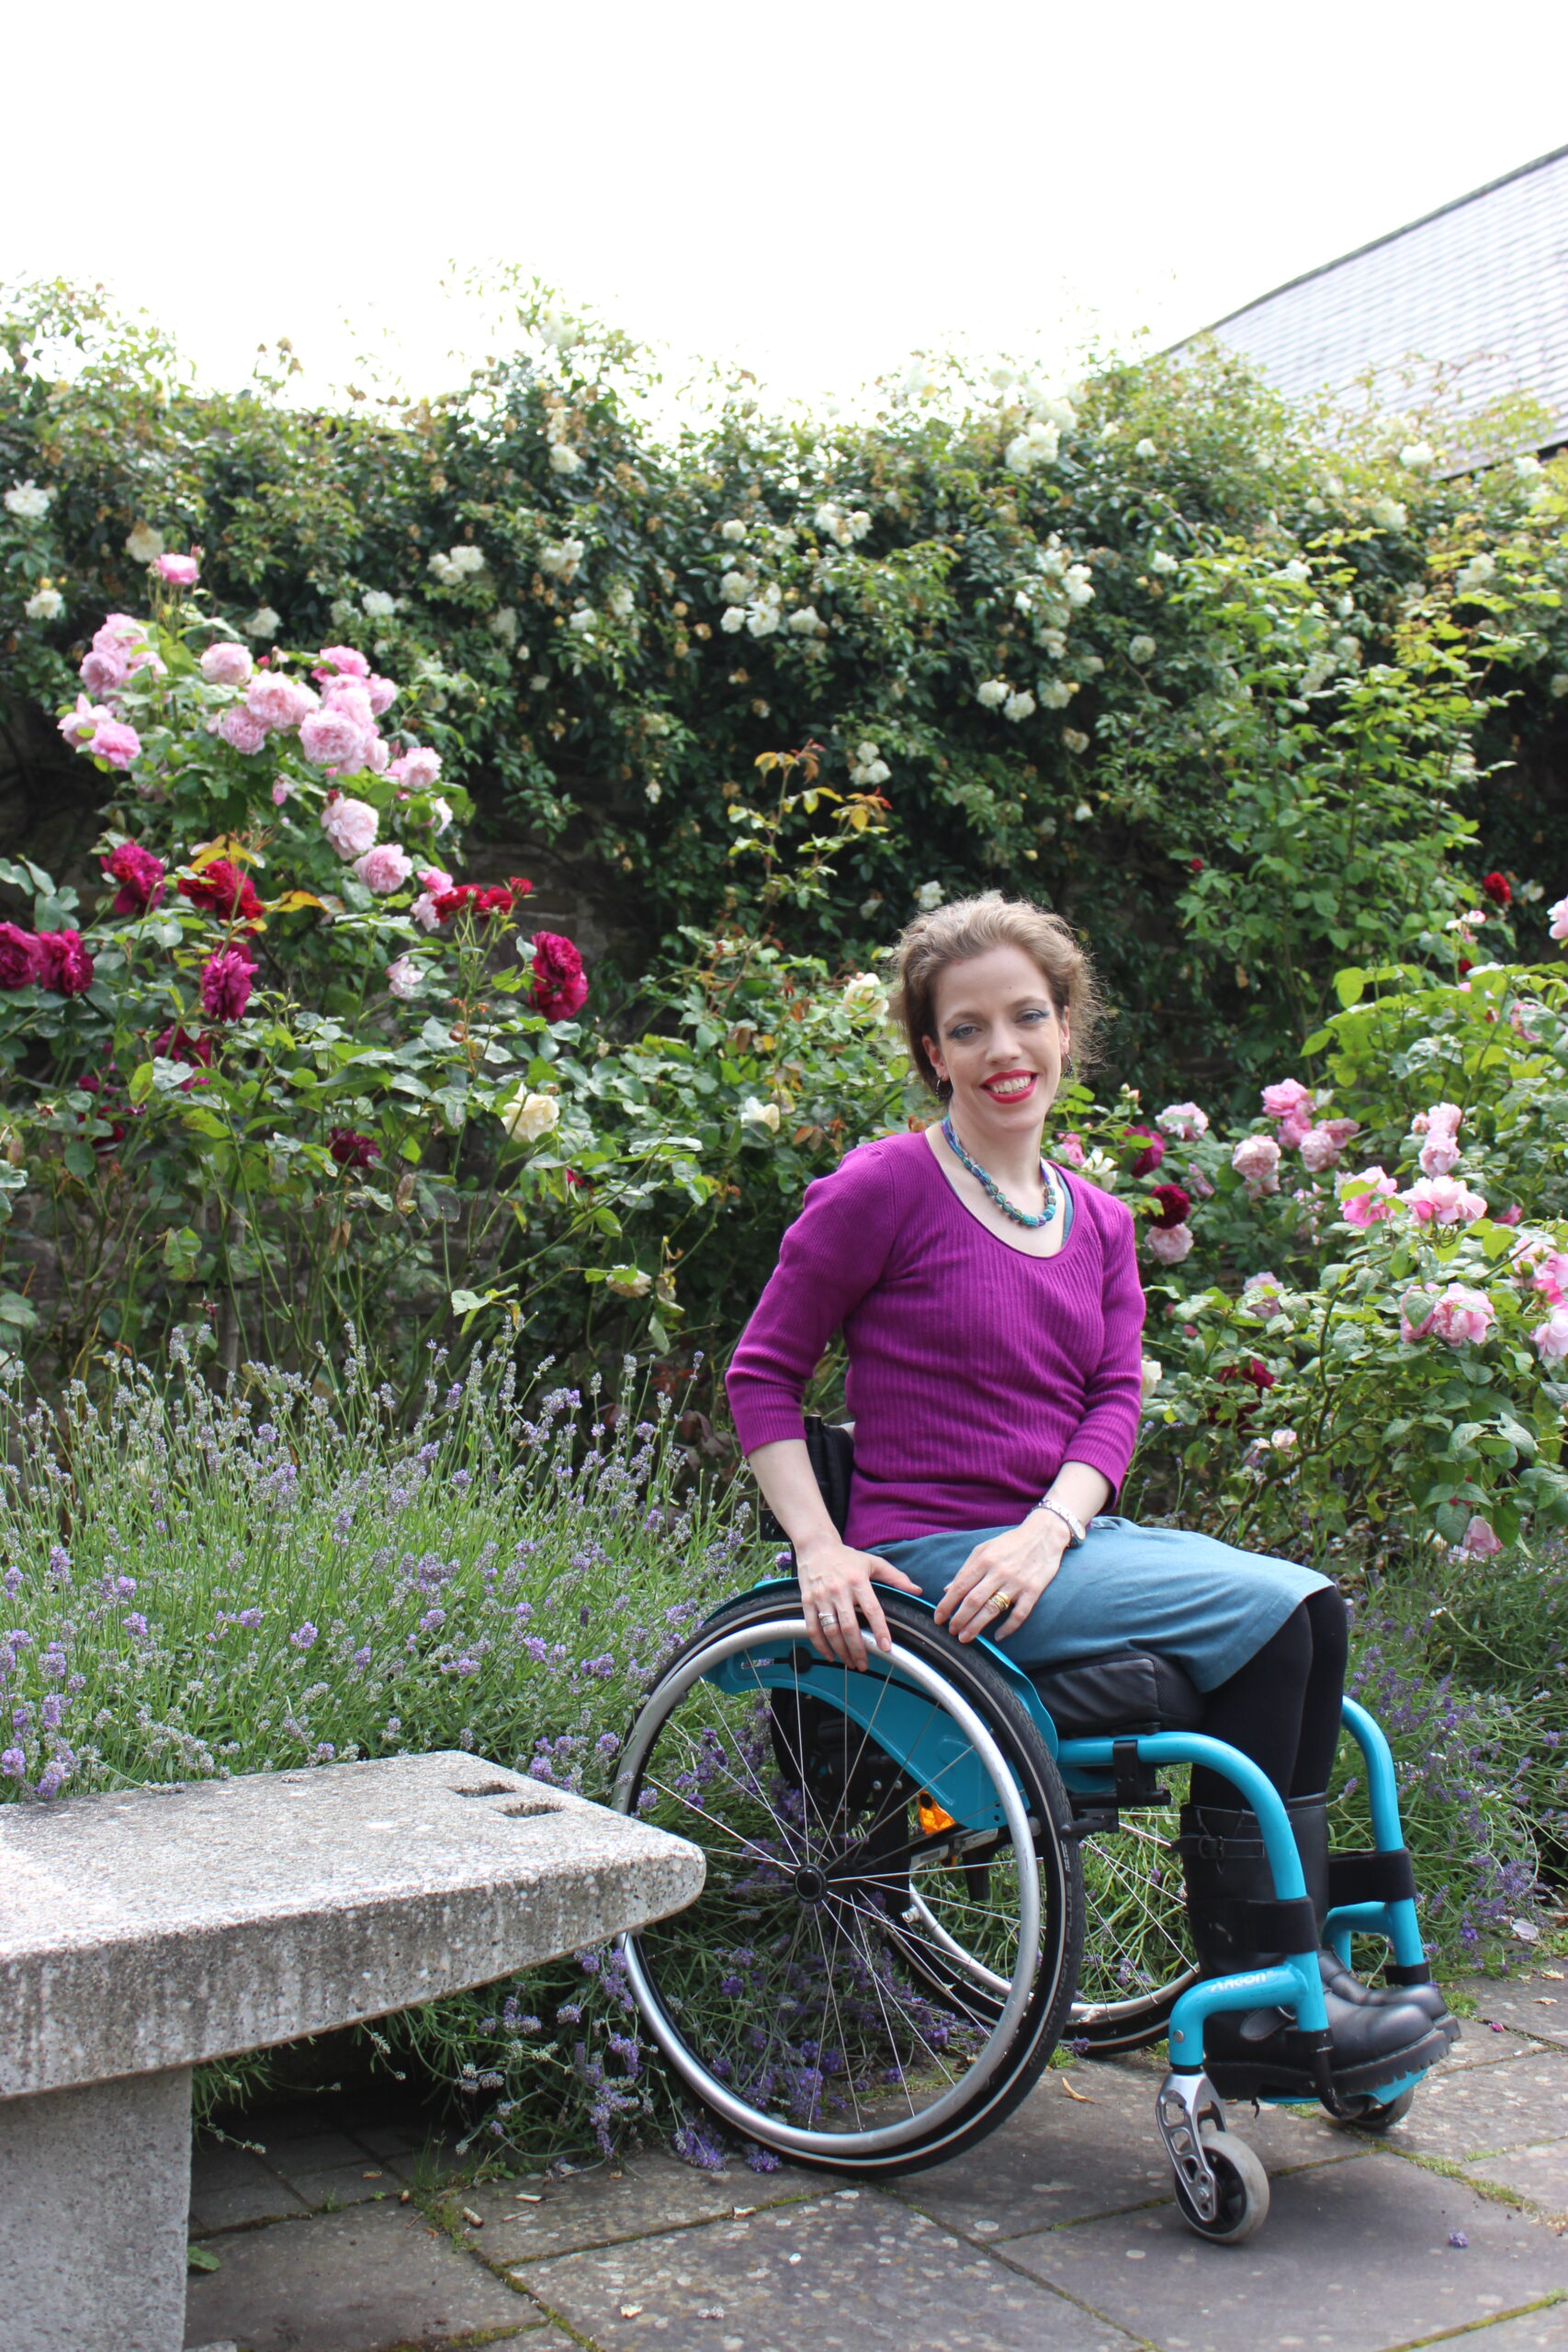 Grace sitting in her teal wheelchair in front of roses in bloom wearing a pink jumper and a teal skirt.